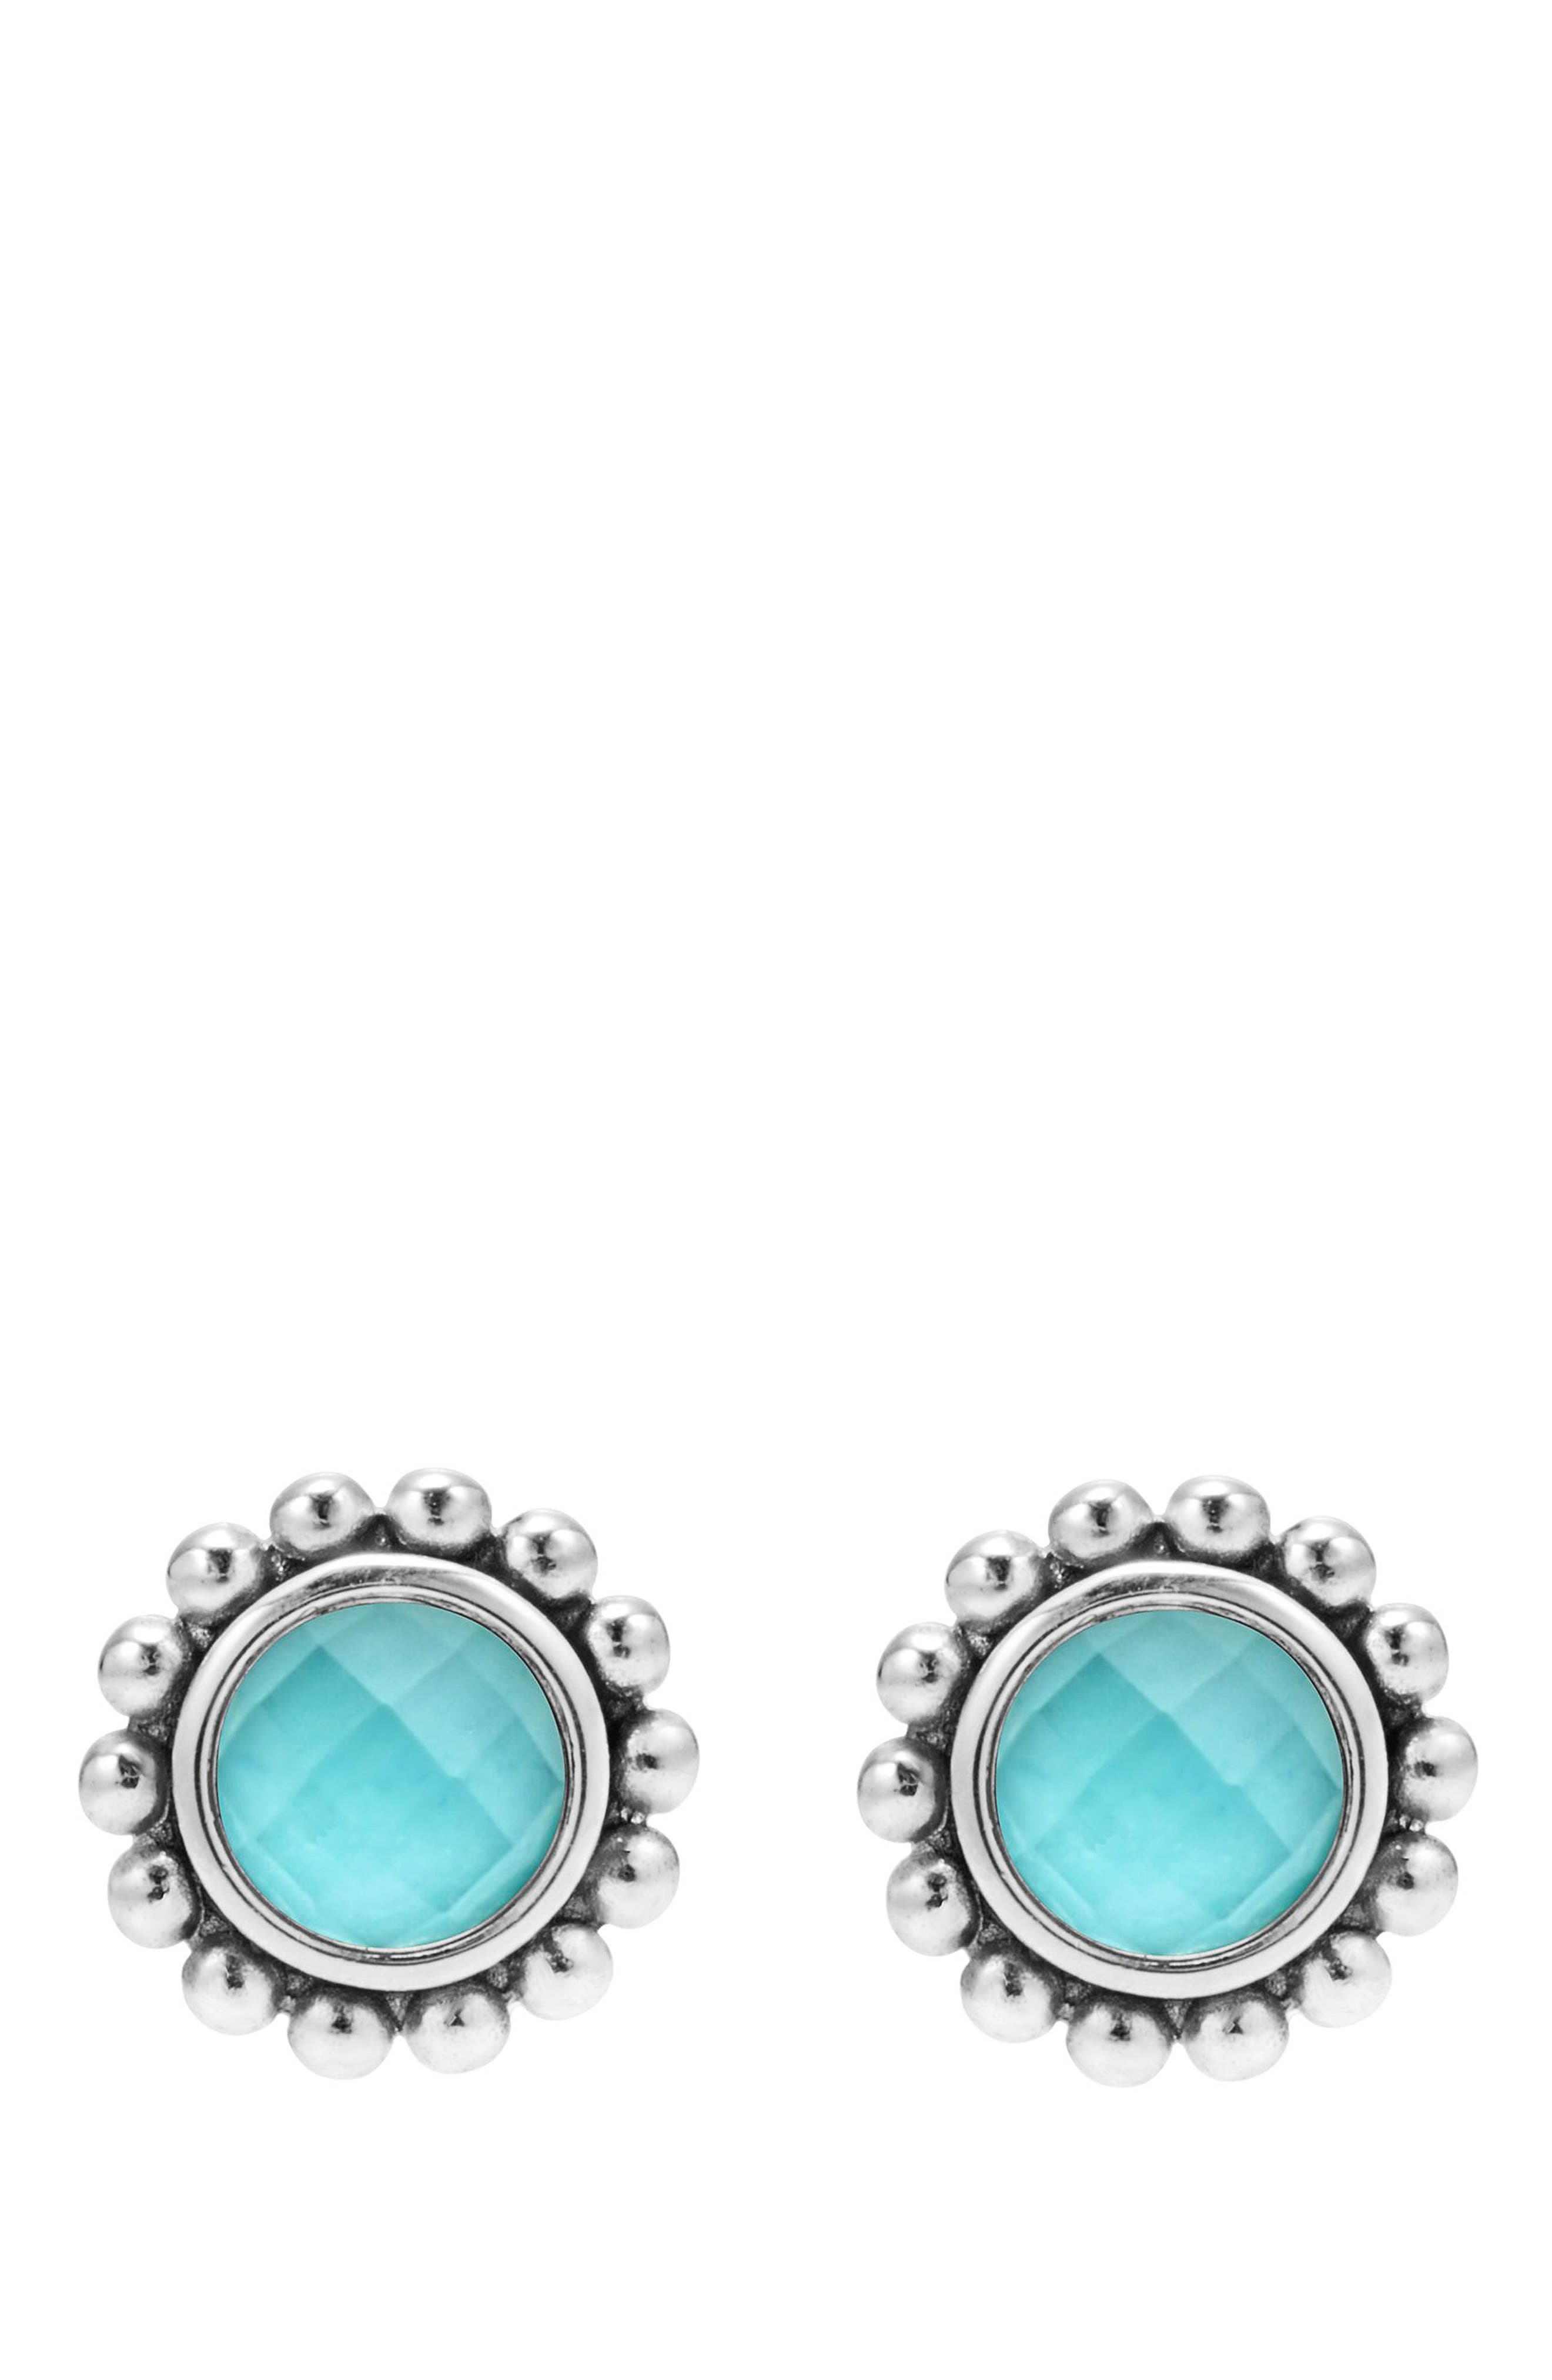 twinkle fan views fanearringsblue crystal aqua alternative htm earrings blue statement turquoise chandelier p